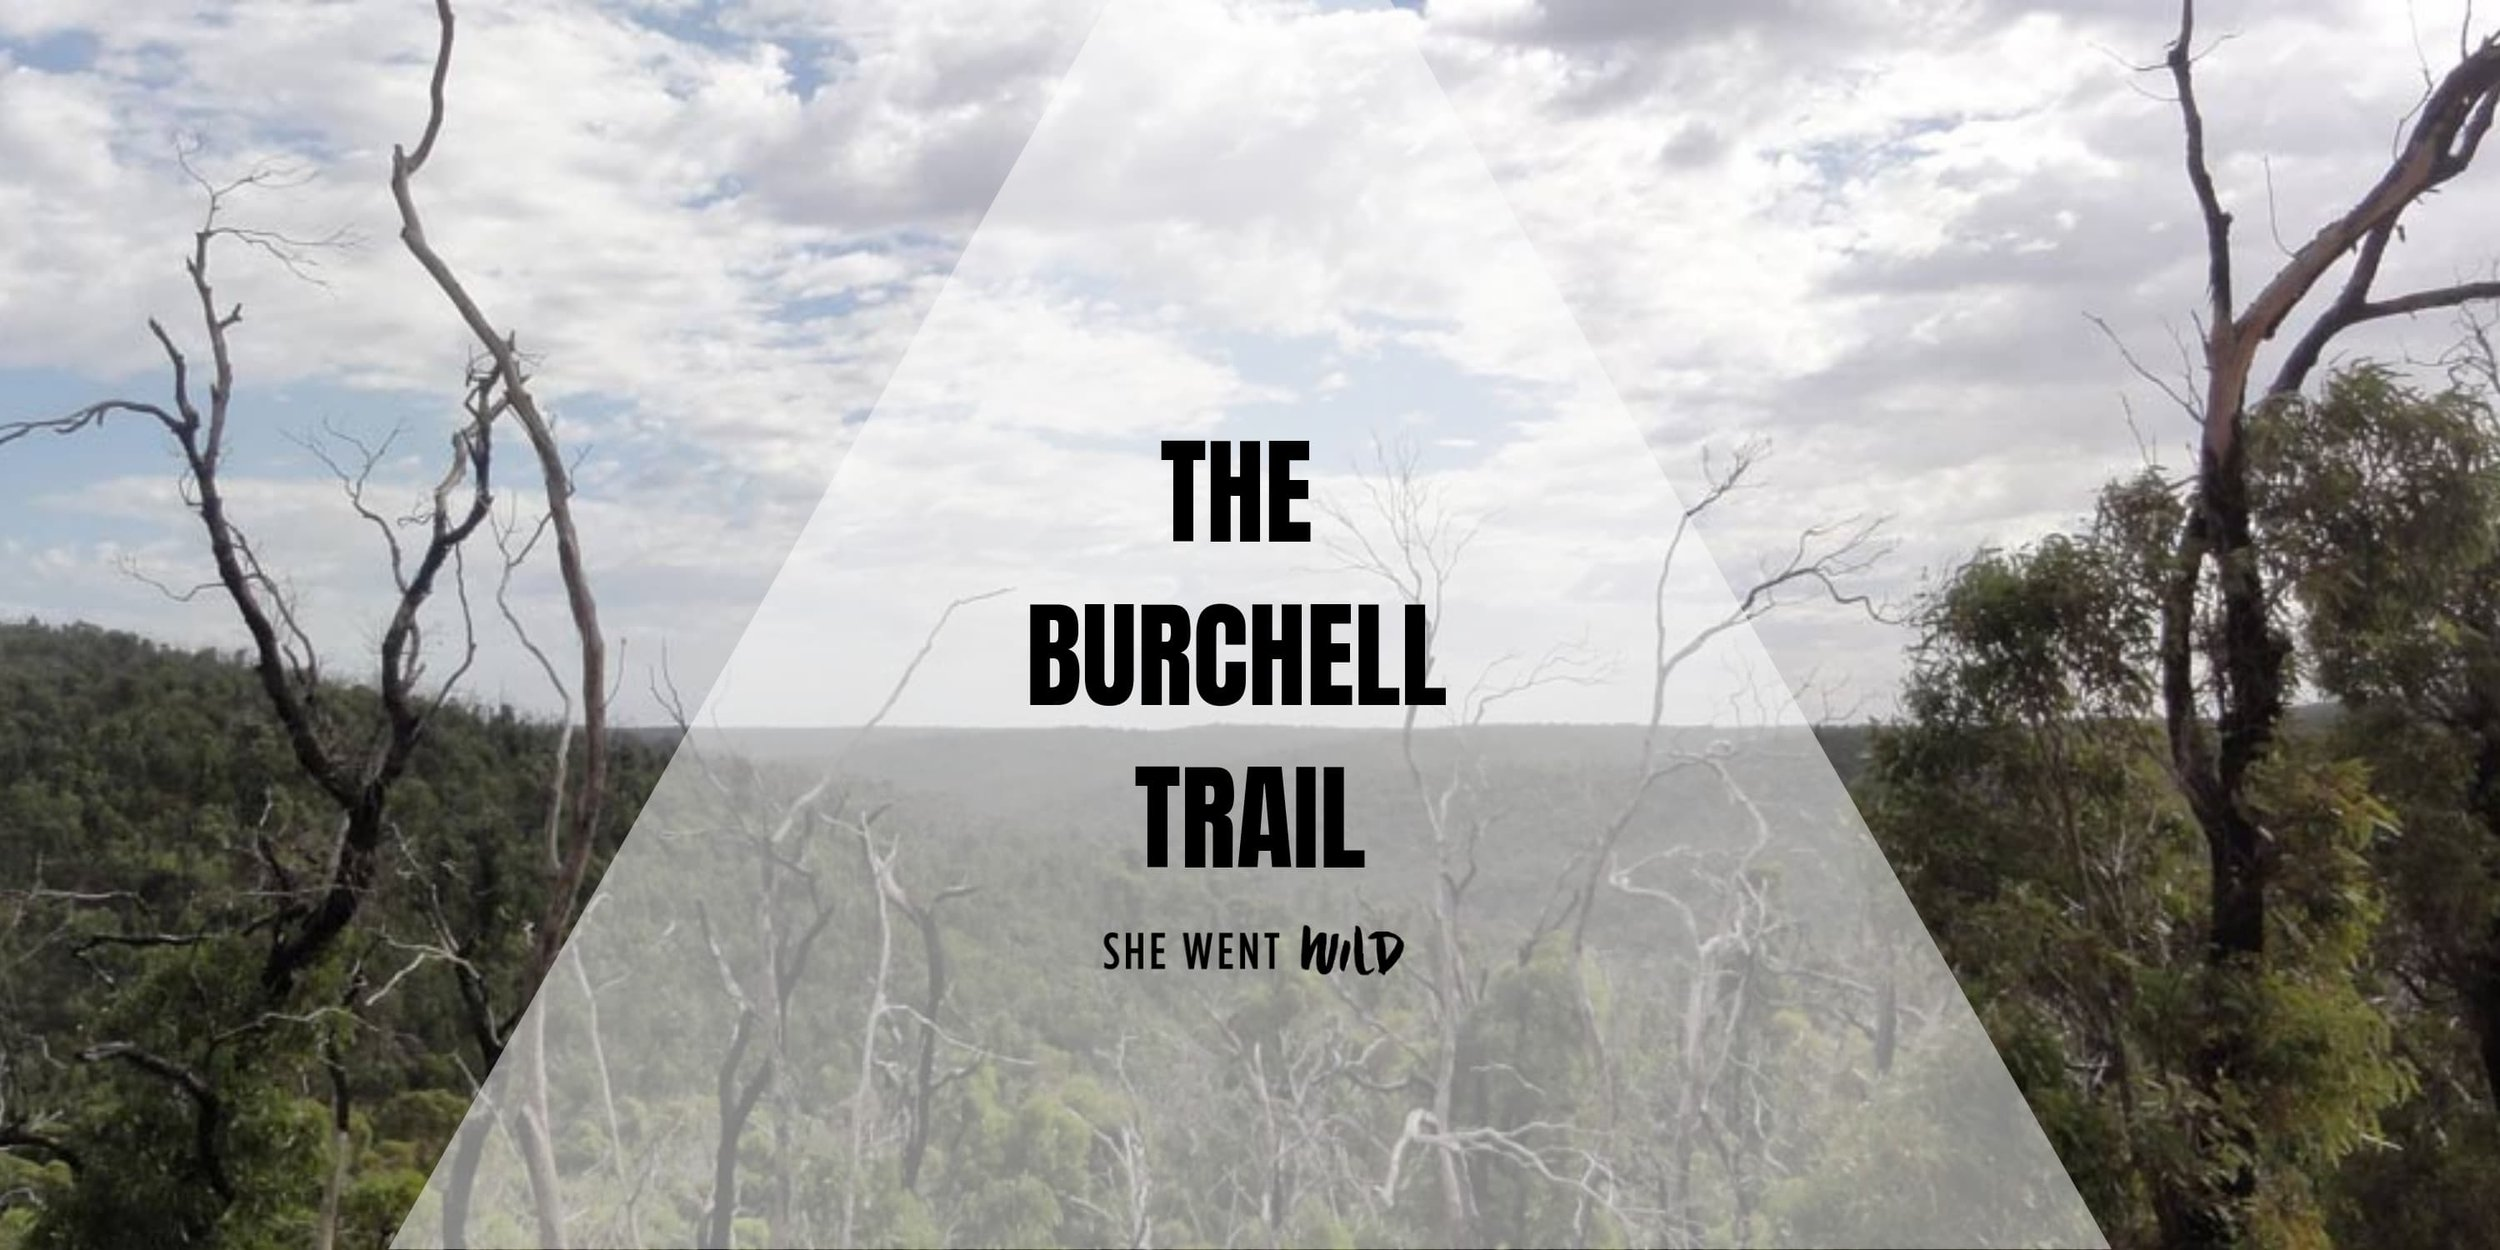 THE BURCHELL TRAIL WITH SHE WENT WILD.jpg